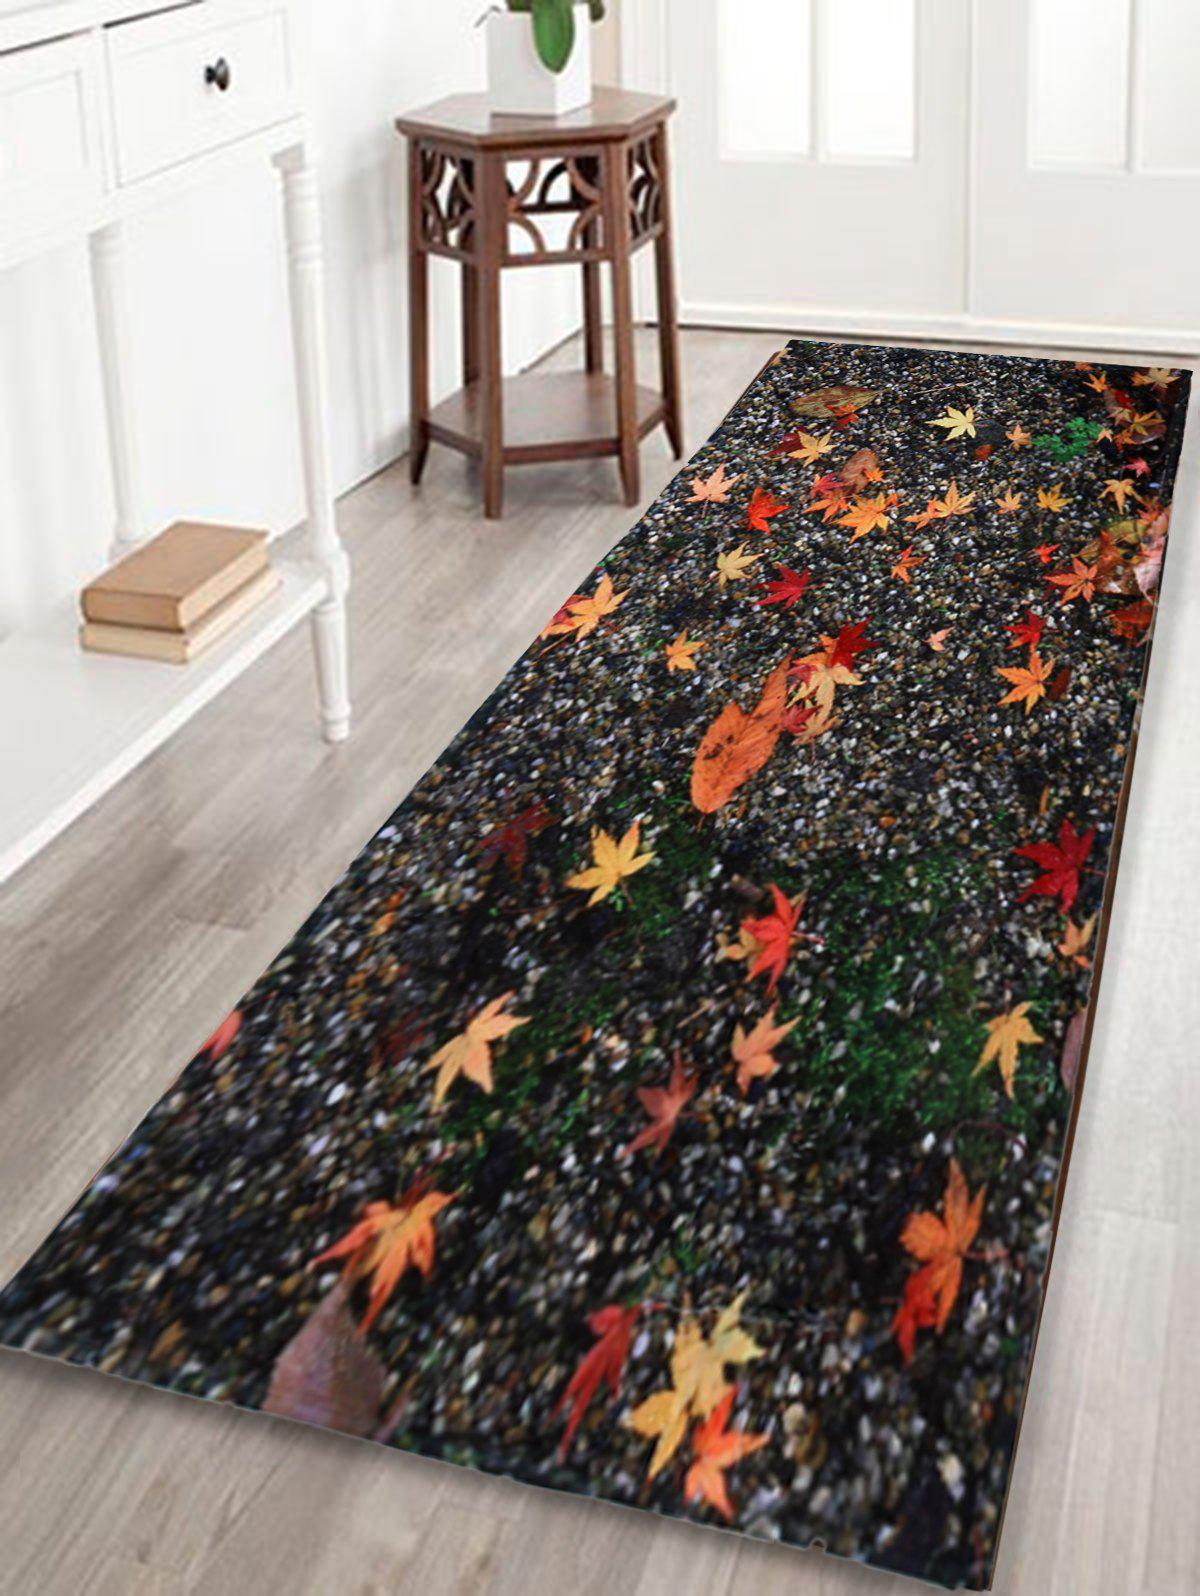 Maple Leaf Sand Floor Non Slip Area RugHOME<br><br>Size: W24 INCH * L71 INCH; Color: COLORMIX; Products Type: Bath rugs; Materials: Coral FLeece; Pattern: Print; Style: Trendy; Shape: Rectangle; Package Contents: 1 x Rug;